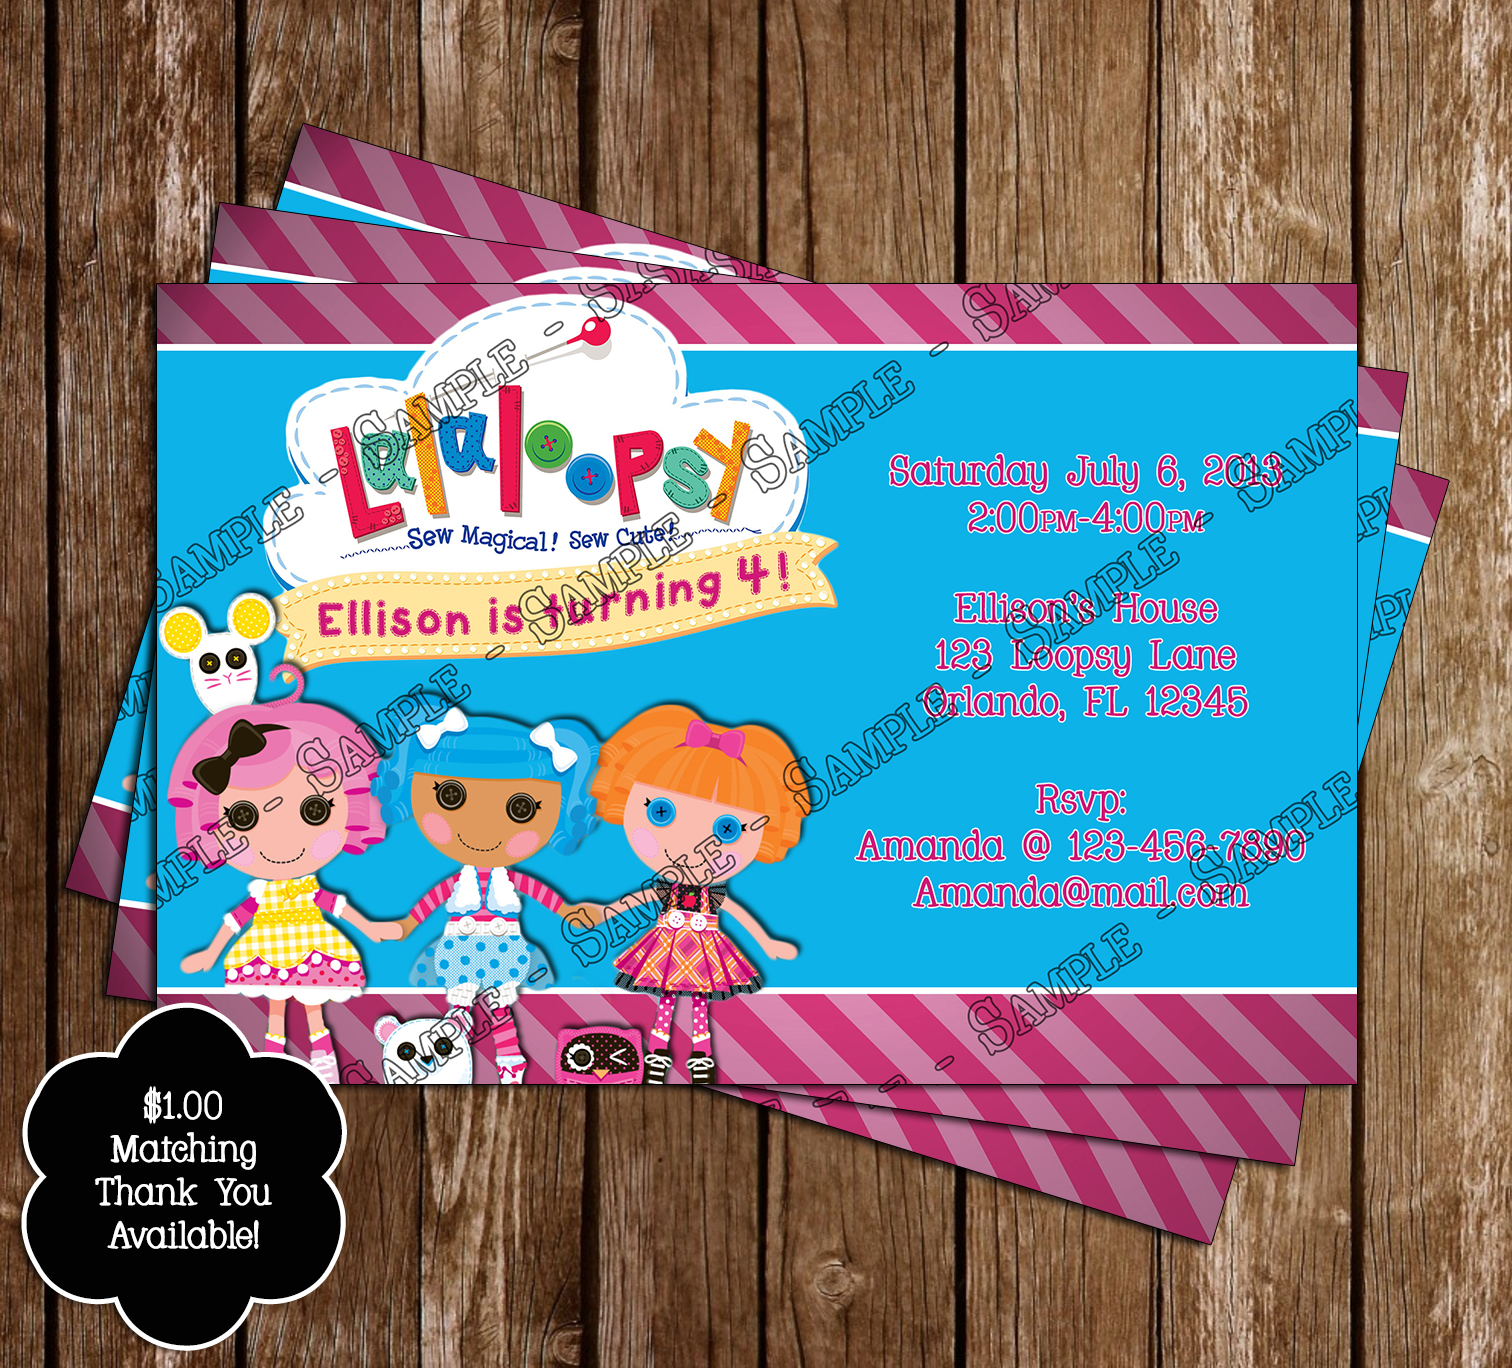 Novel concept designs lalaloopsy birthday invitation and thank you lalaloopsy birthday invitation and thank you card july 07 2013 filmwisefo